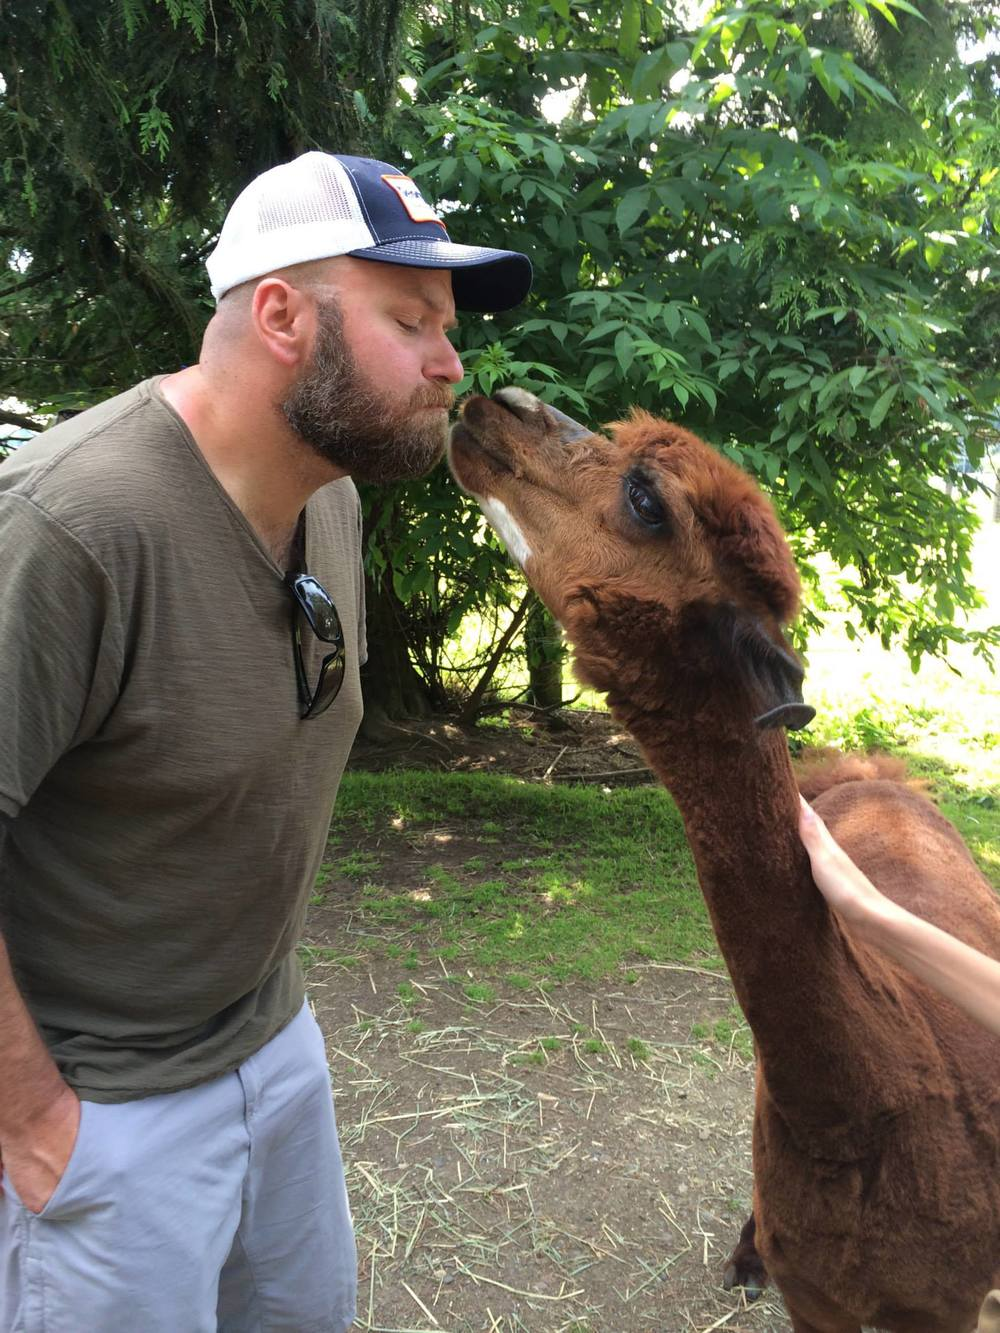 As promised...llama kissing!